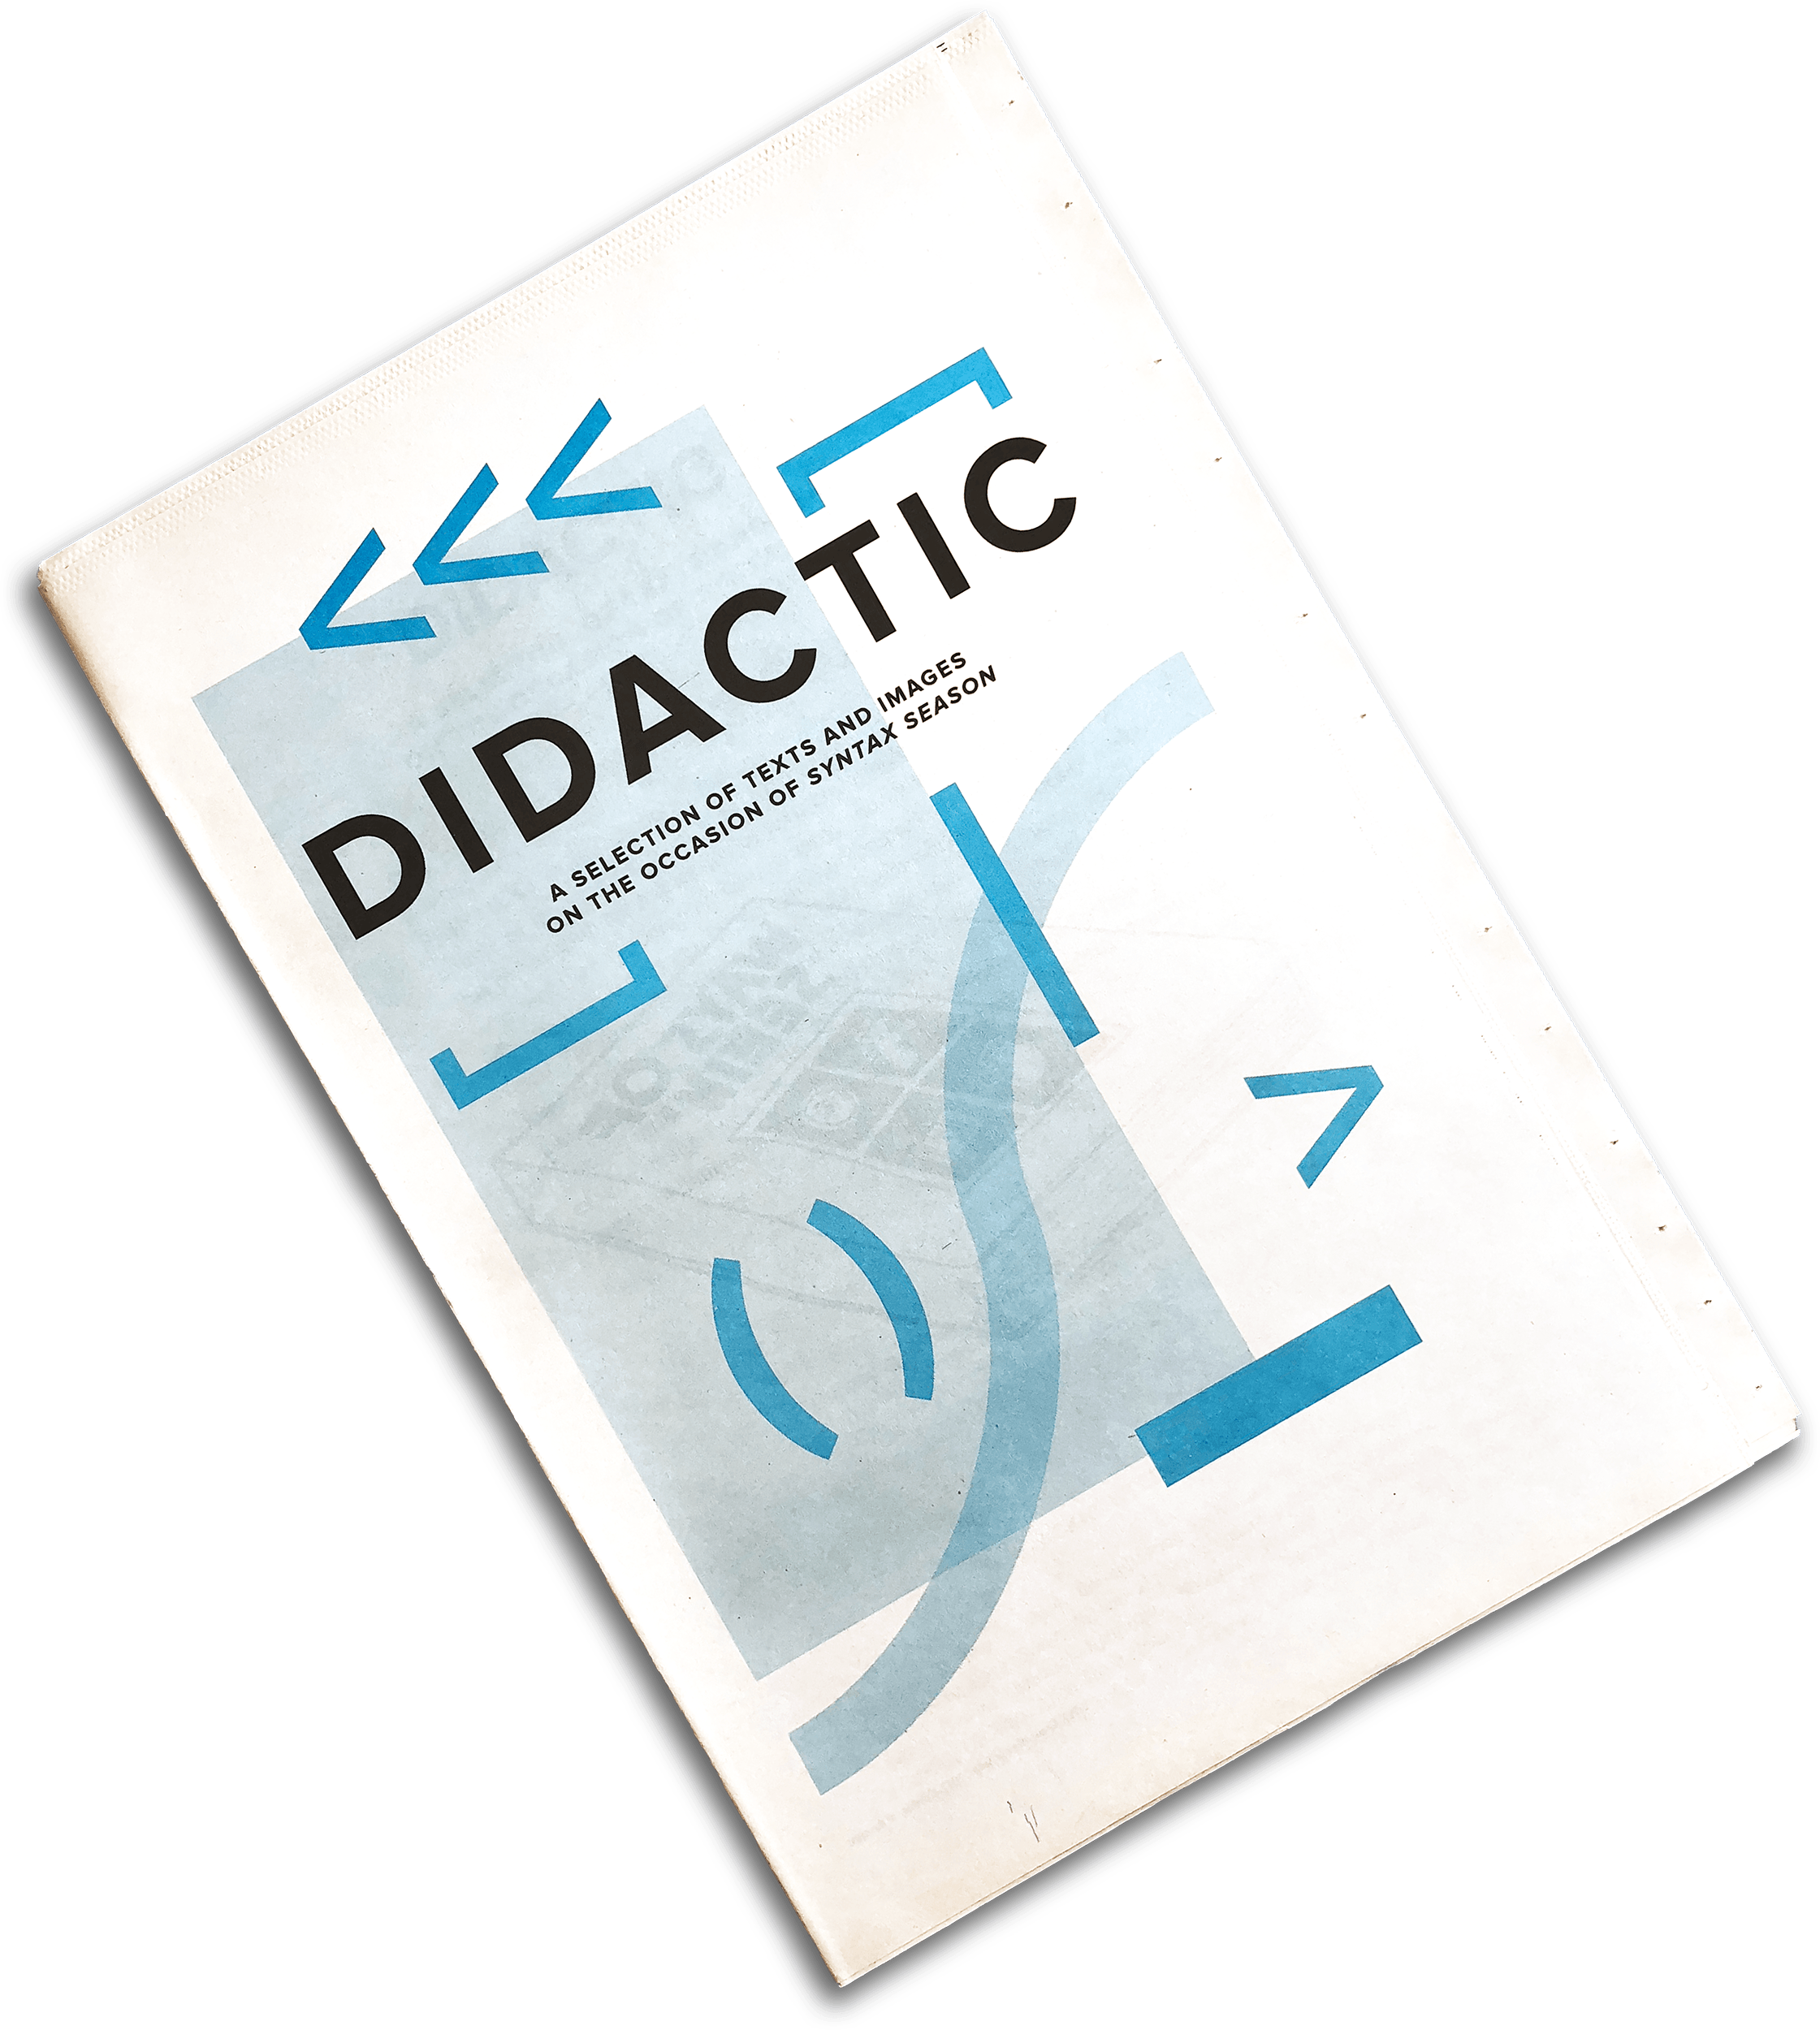 Didactic IV: Syntax Season - View more here ➝